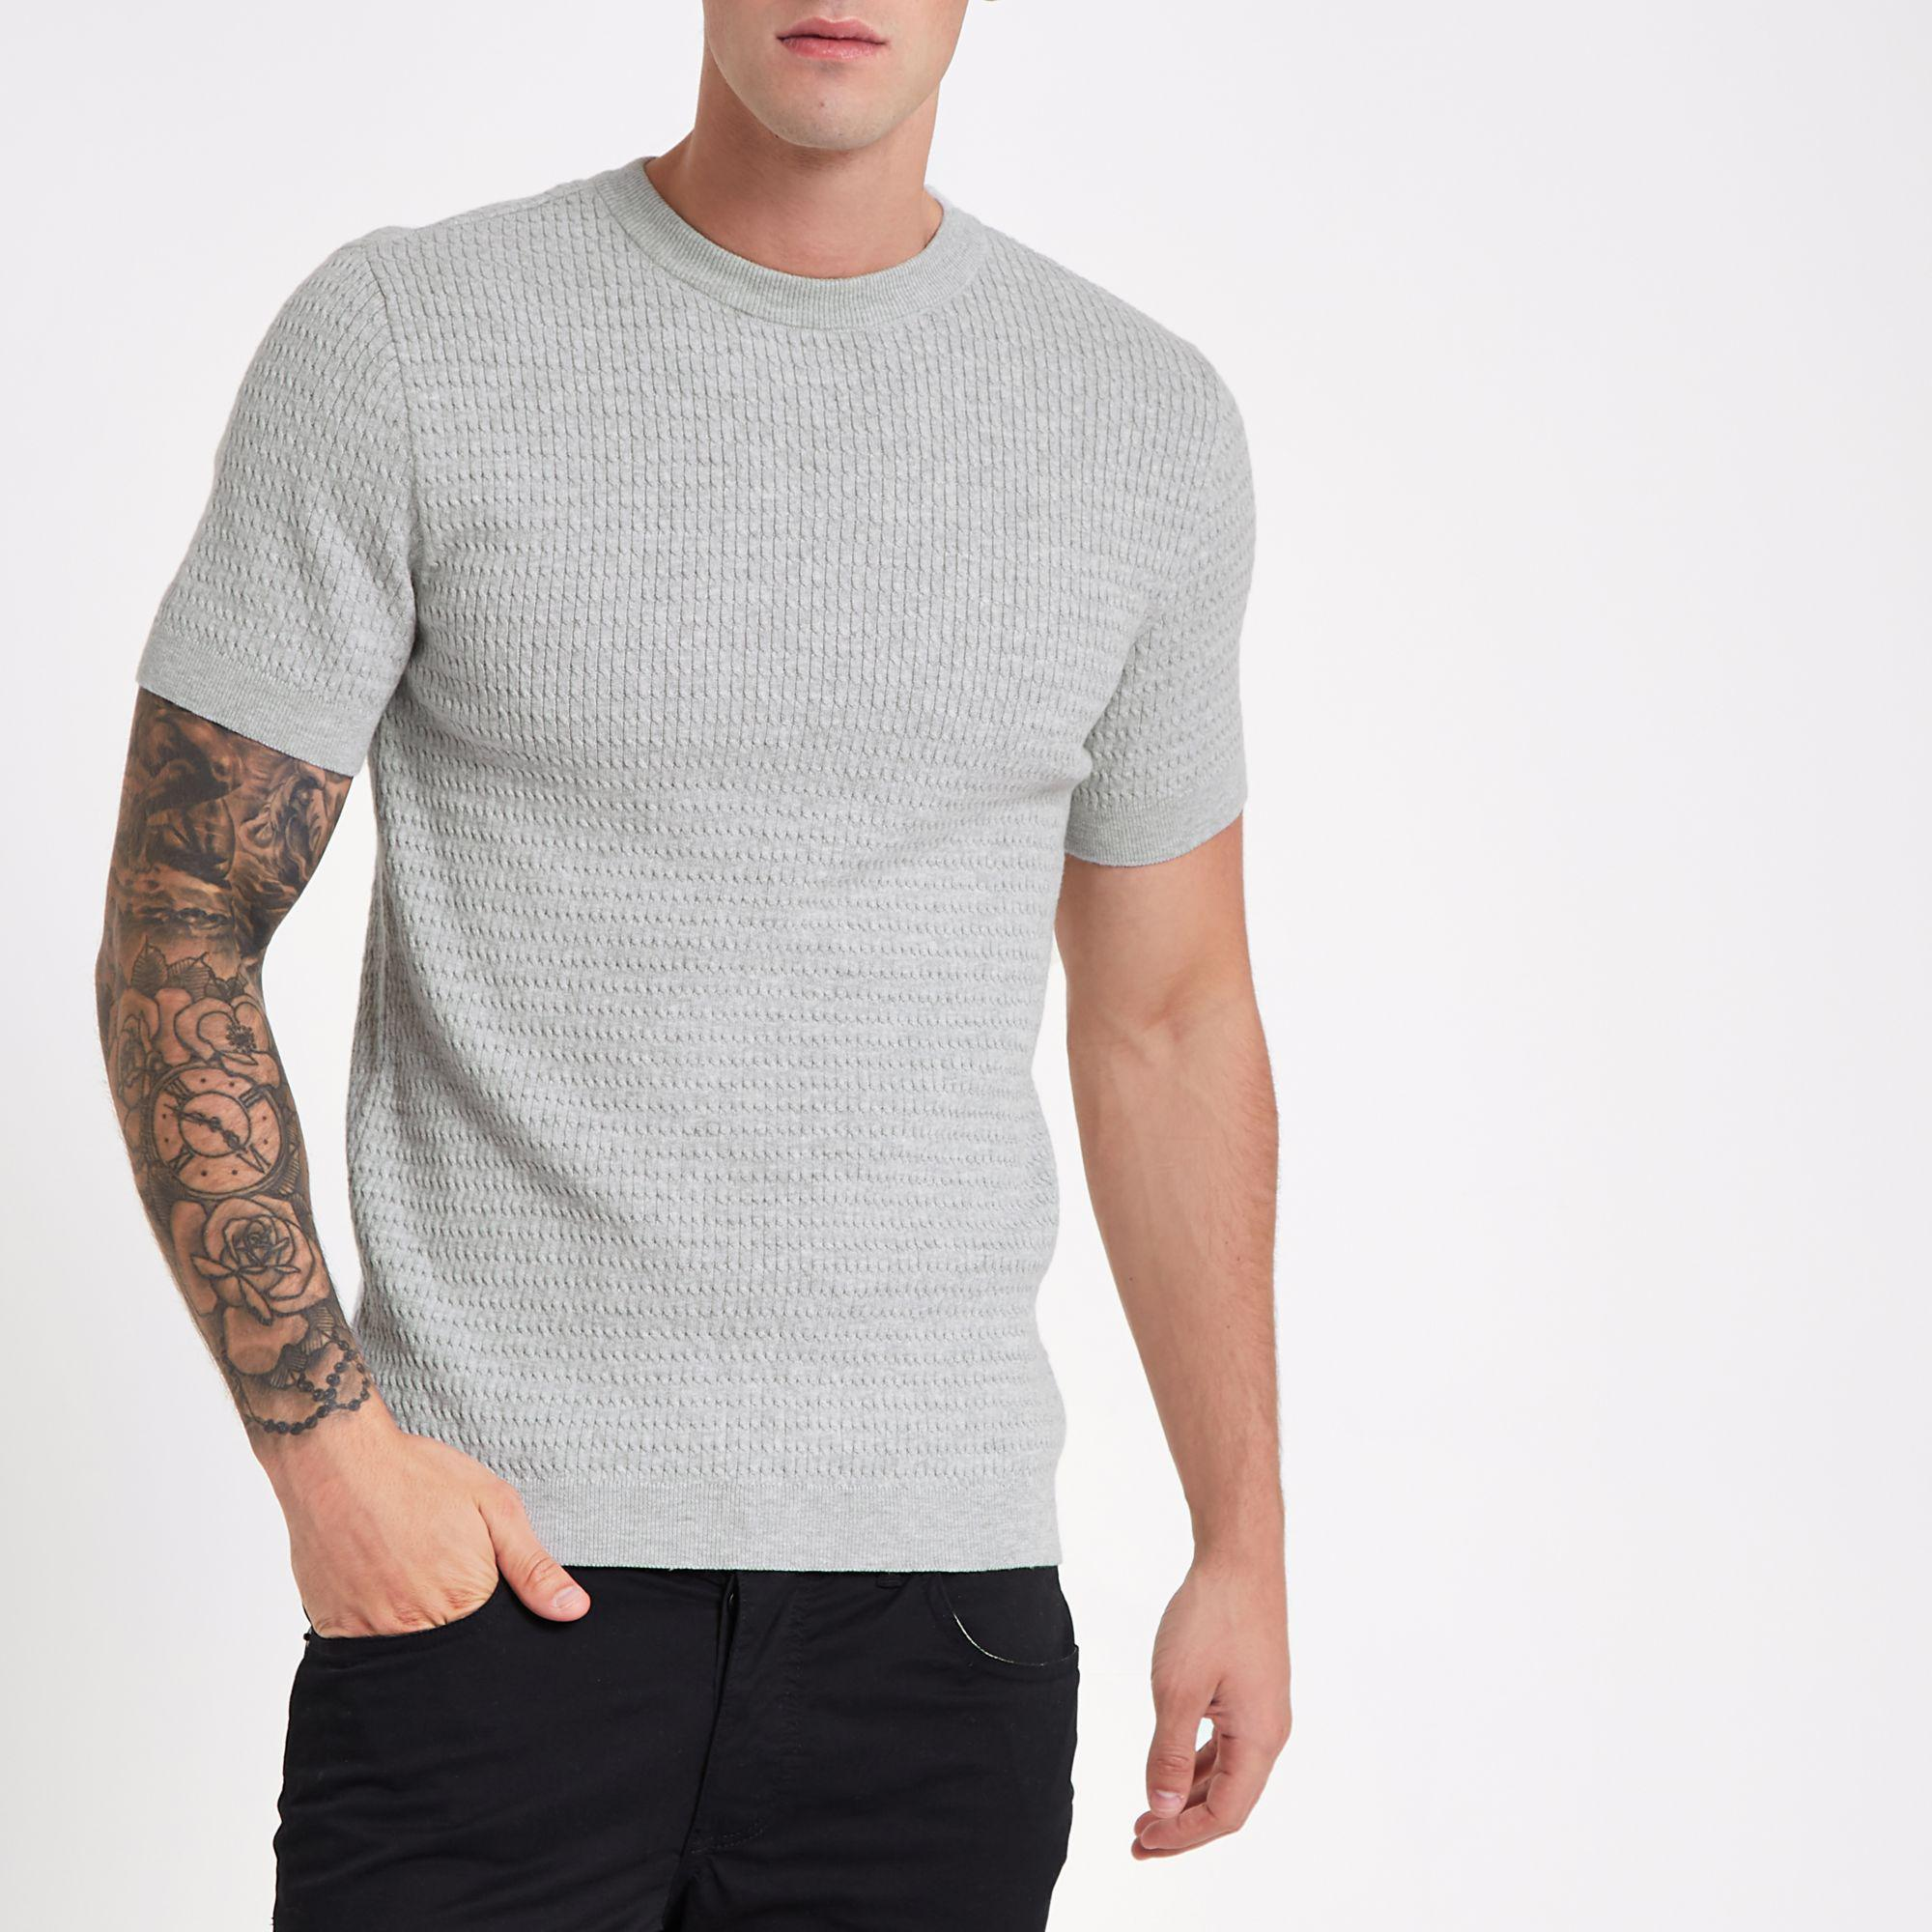 989546fe080 River island muscle fit cable knit shirt in gray for men lyst jpg 2000x2000  Cable knot